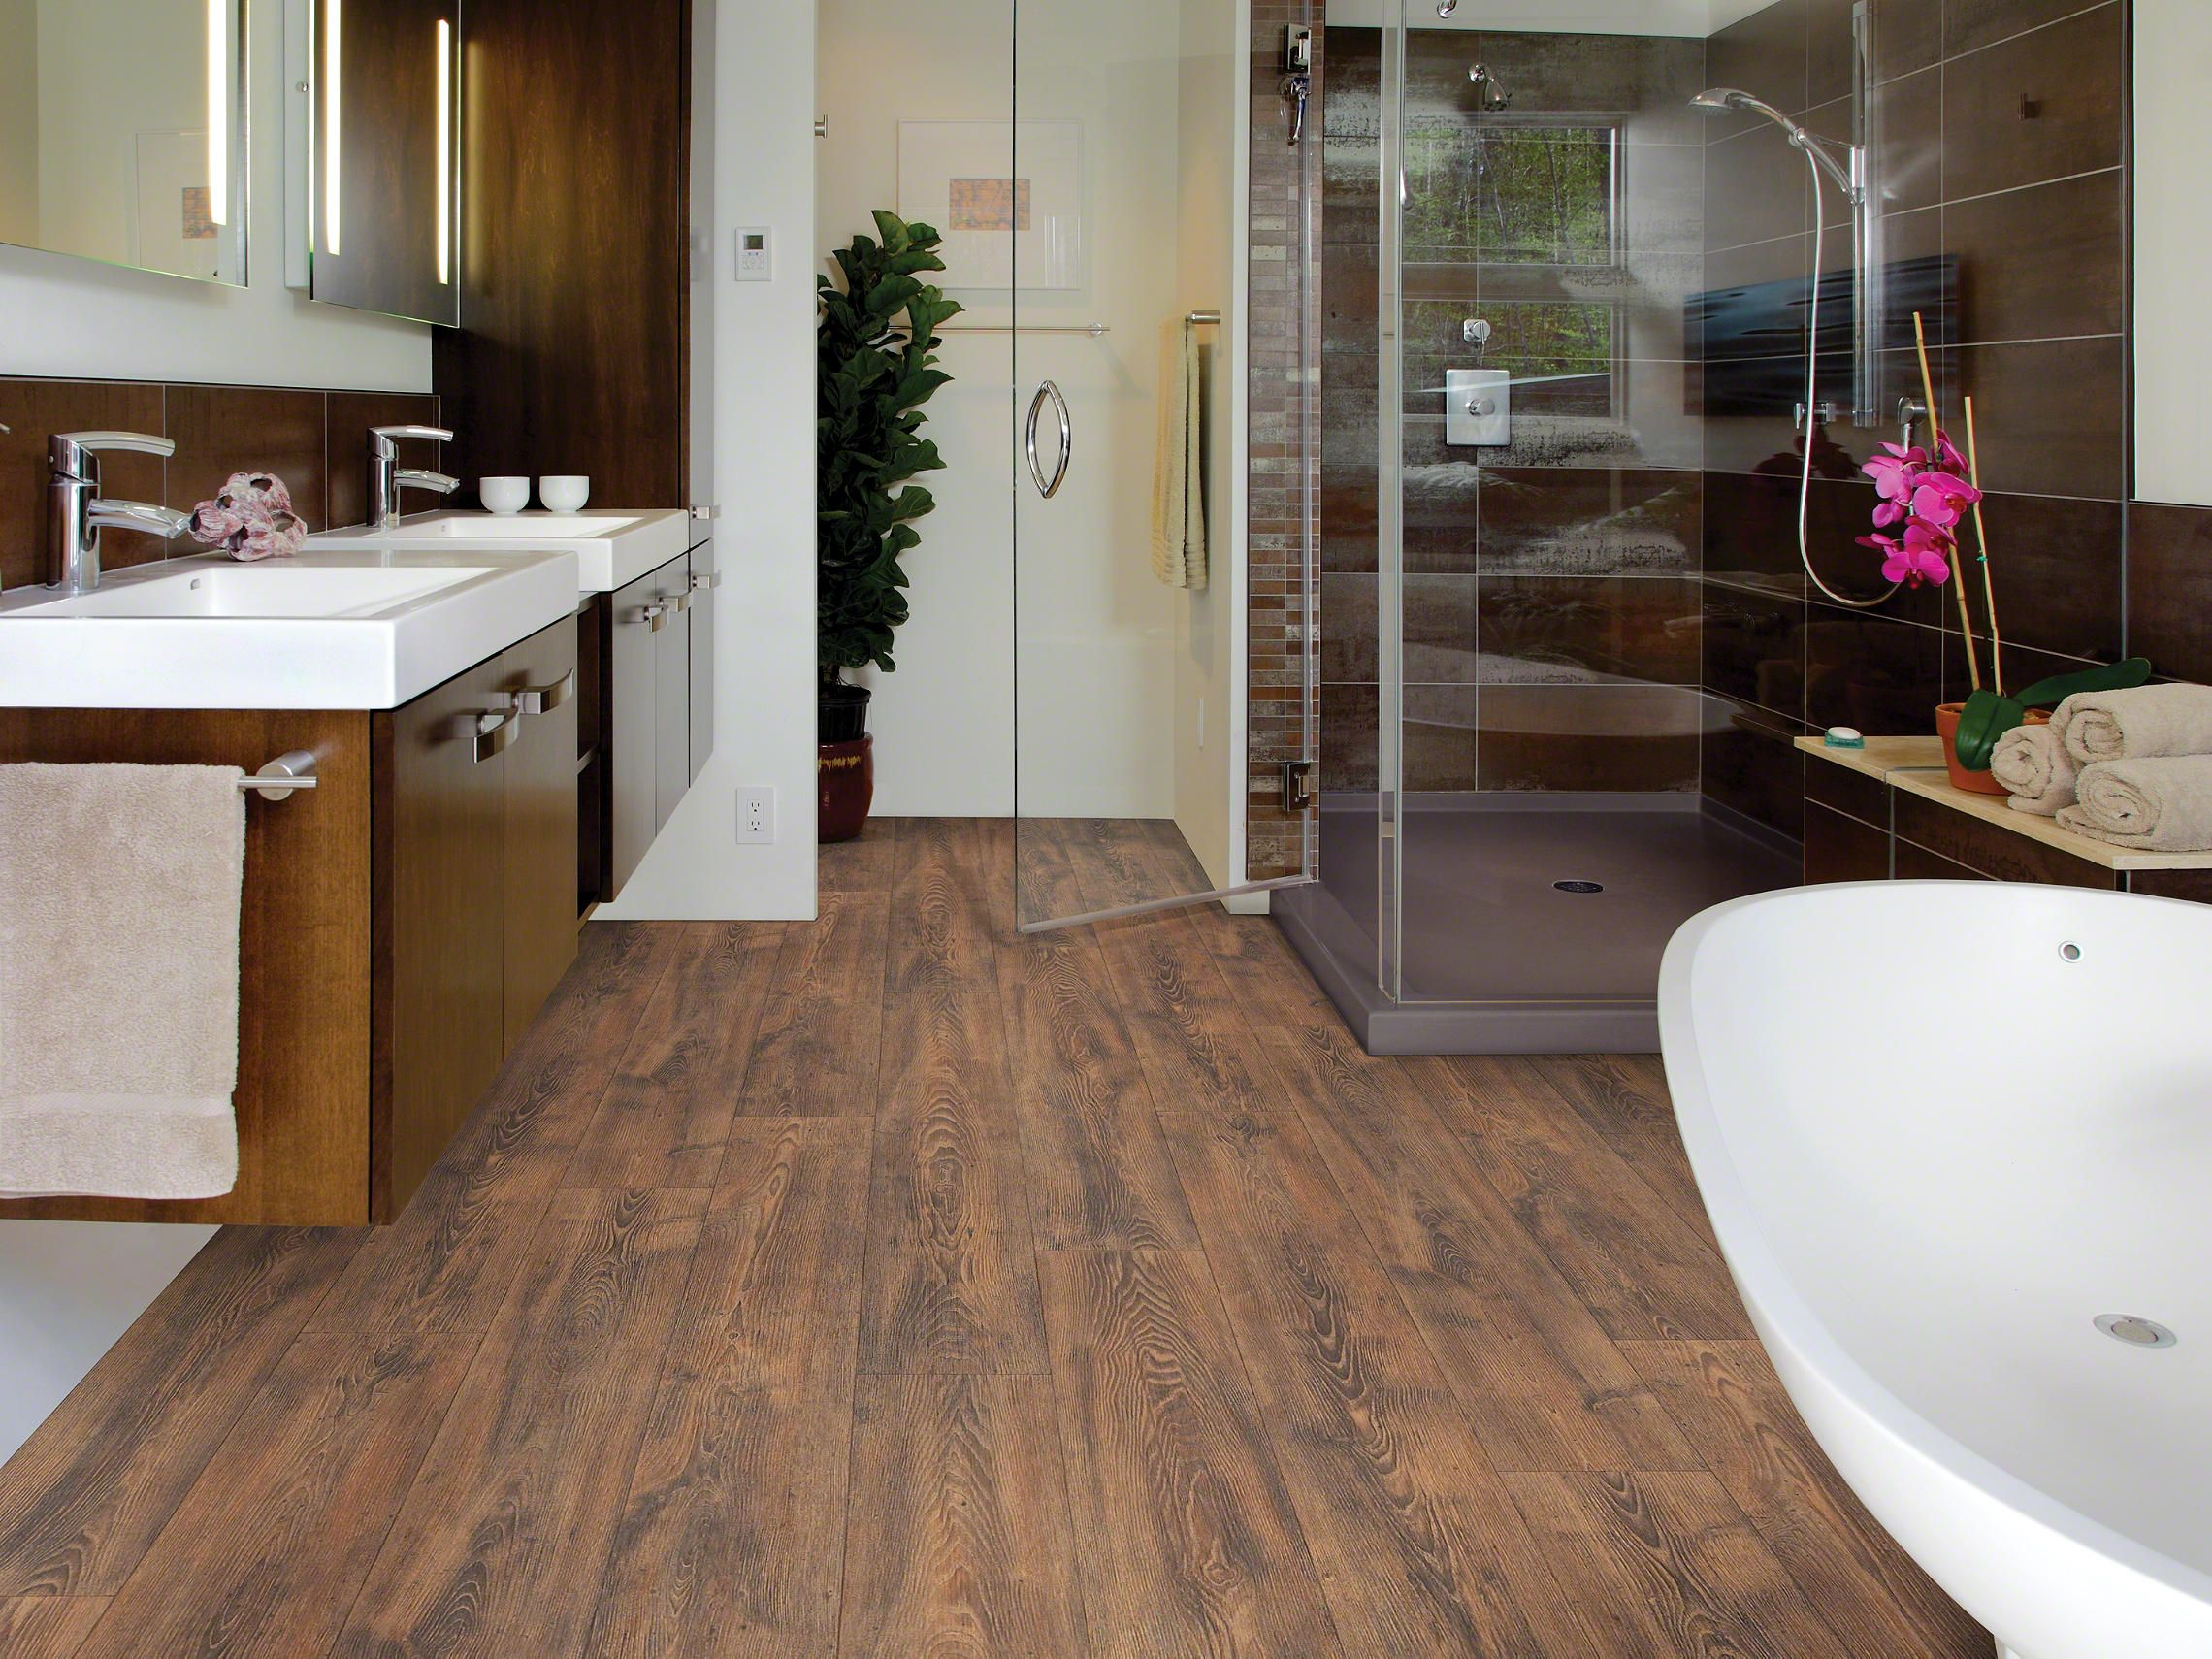 Picture Gallery Website Shaw us urbanality plank skyline resilient vinyl flooring is the modern choice for beautiful u durable floors Wide variety of patterns u colors